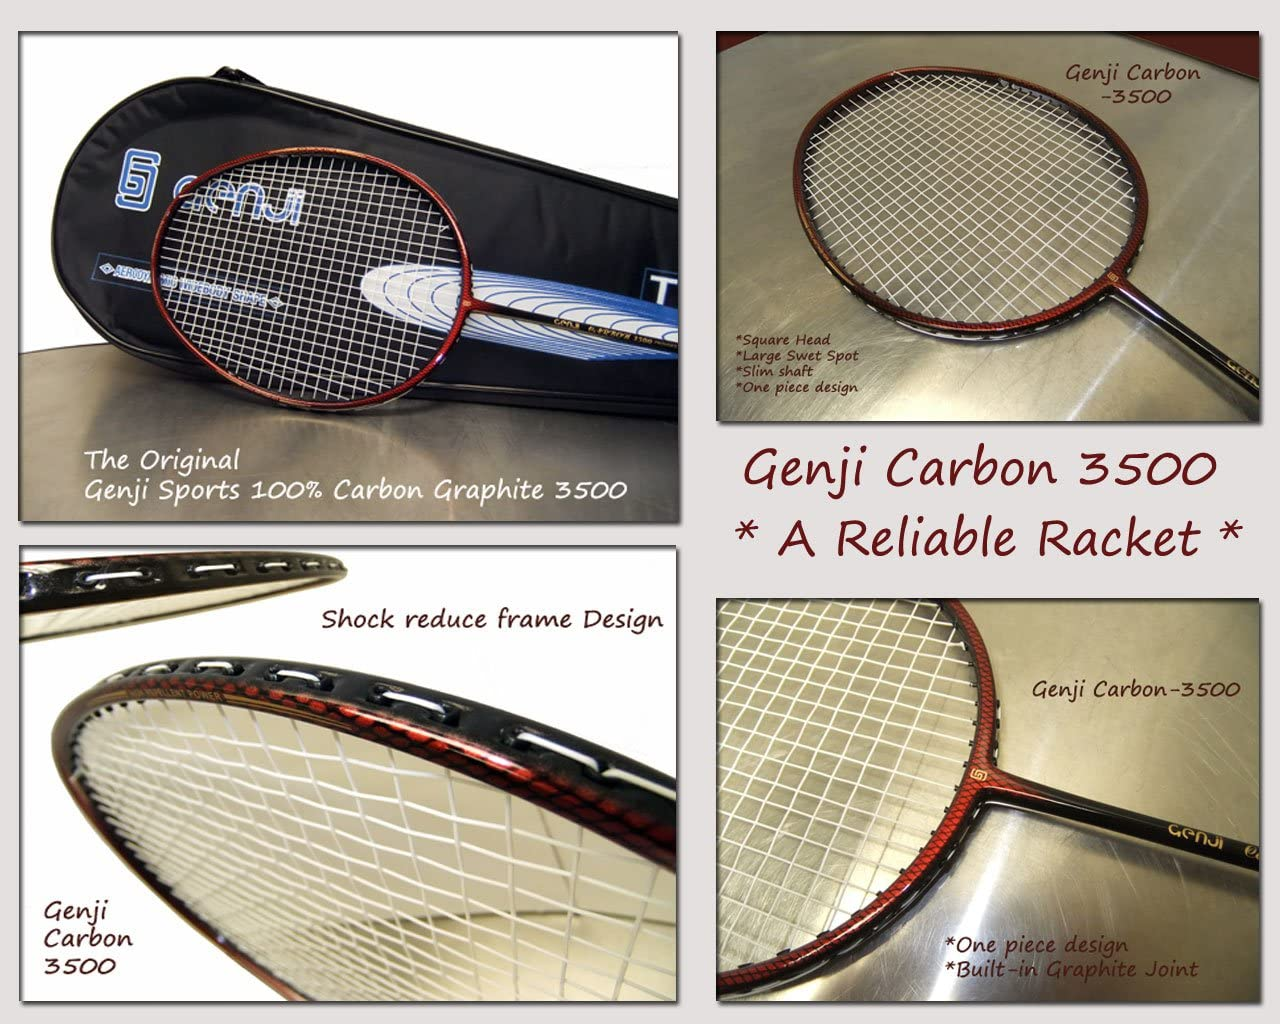 Top 8 Best Badminton Racket Under 100 (2020 Reviews ...